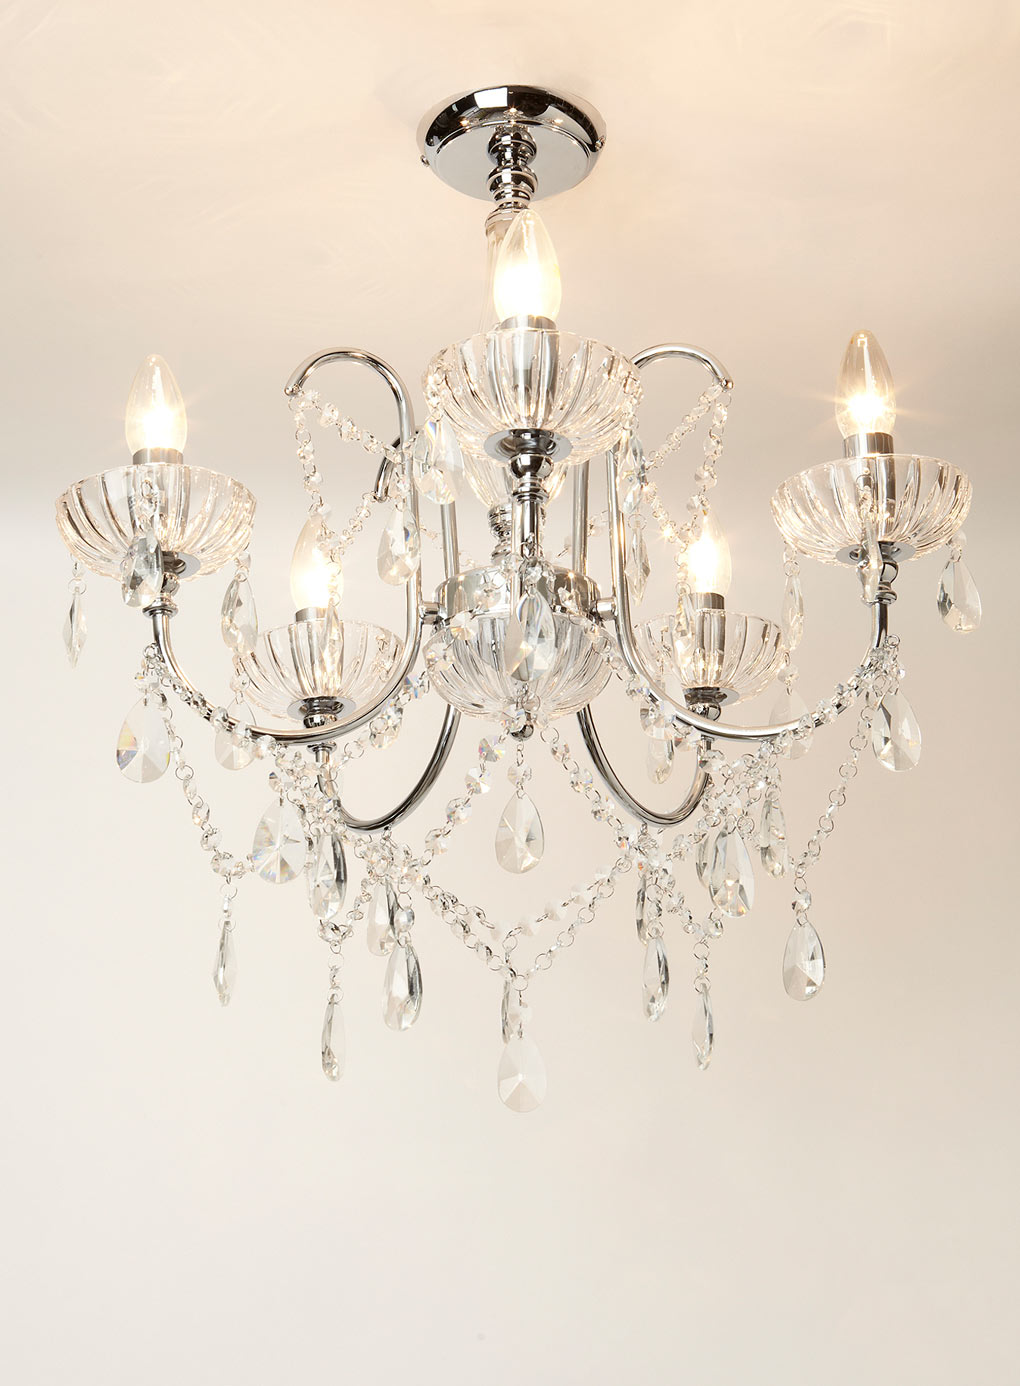 Choosing chandelier ceiling lights for different rooms warisan chandelier ceiling lights photo 4 aloadofball Choice Image